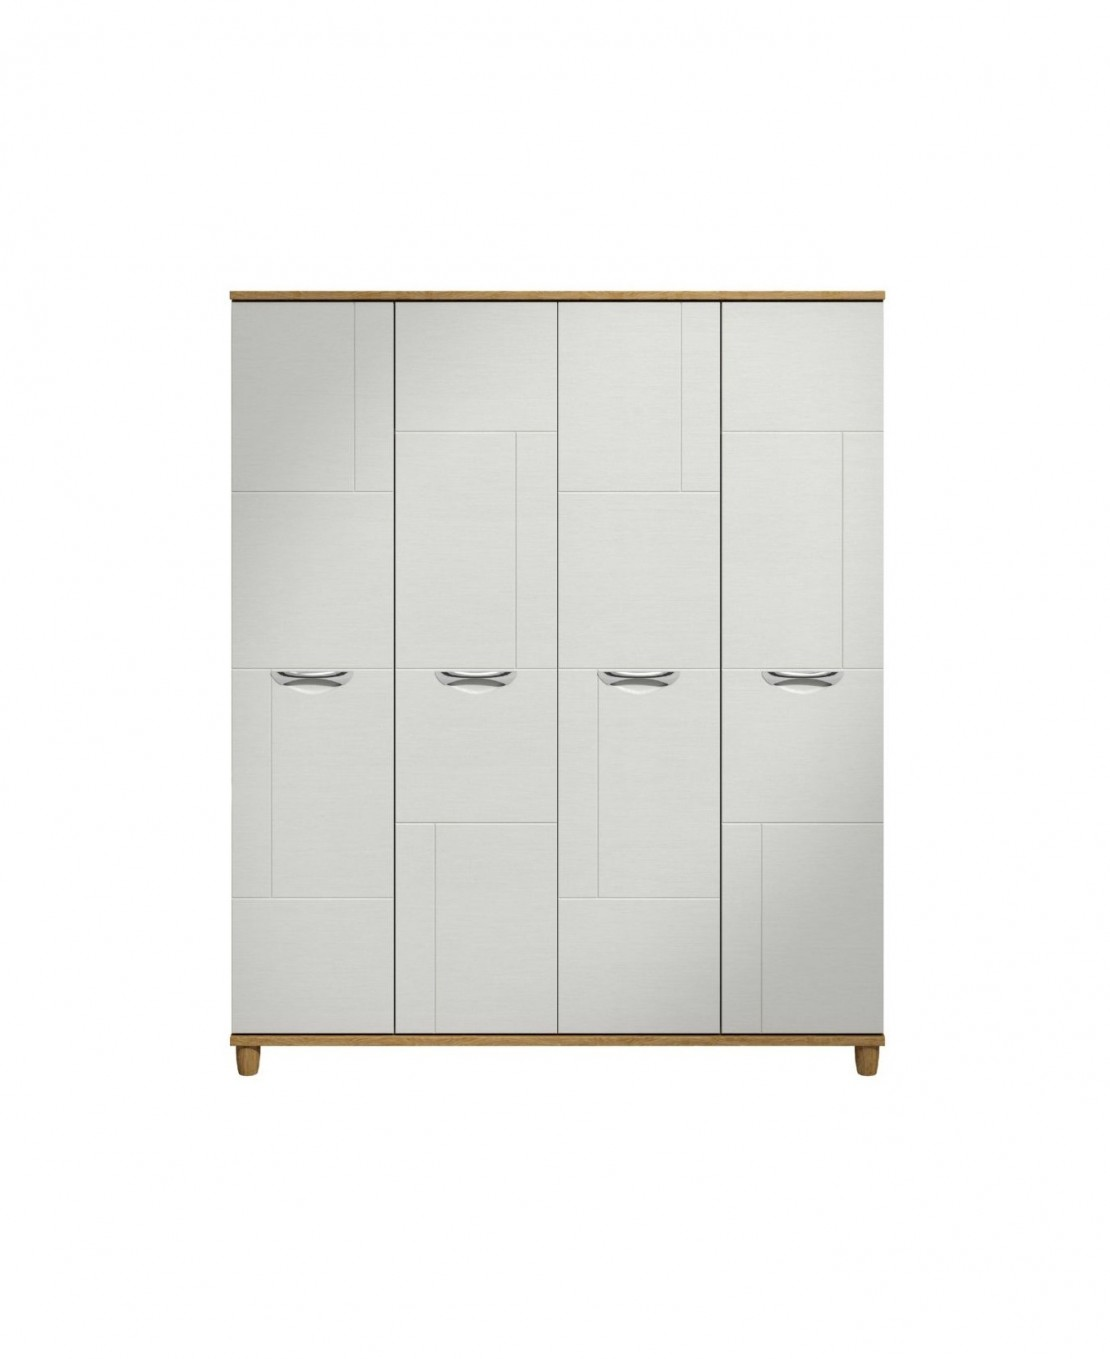 /_images/product-photos/kt-furniture-moda-white-4-door-robe-a.jpg